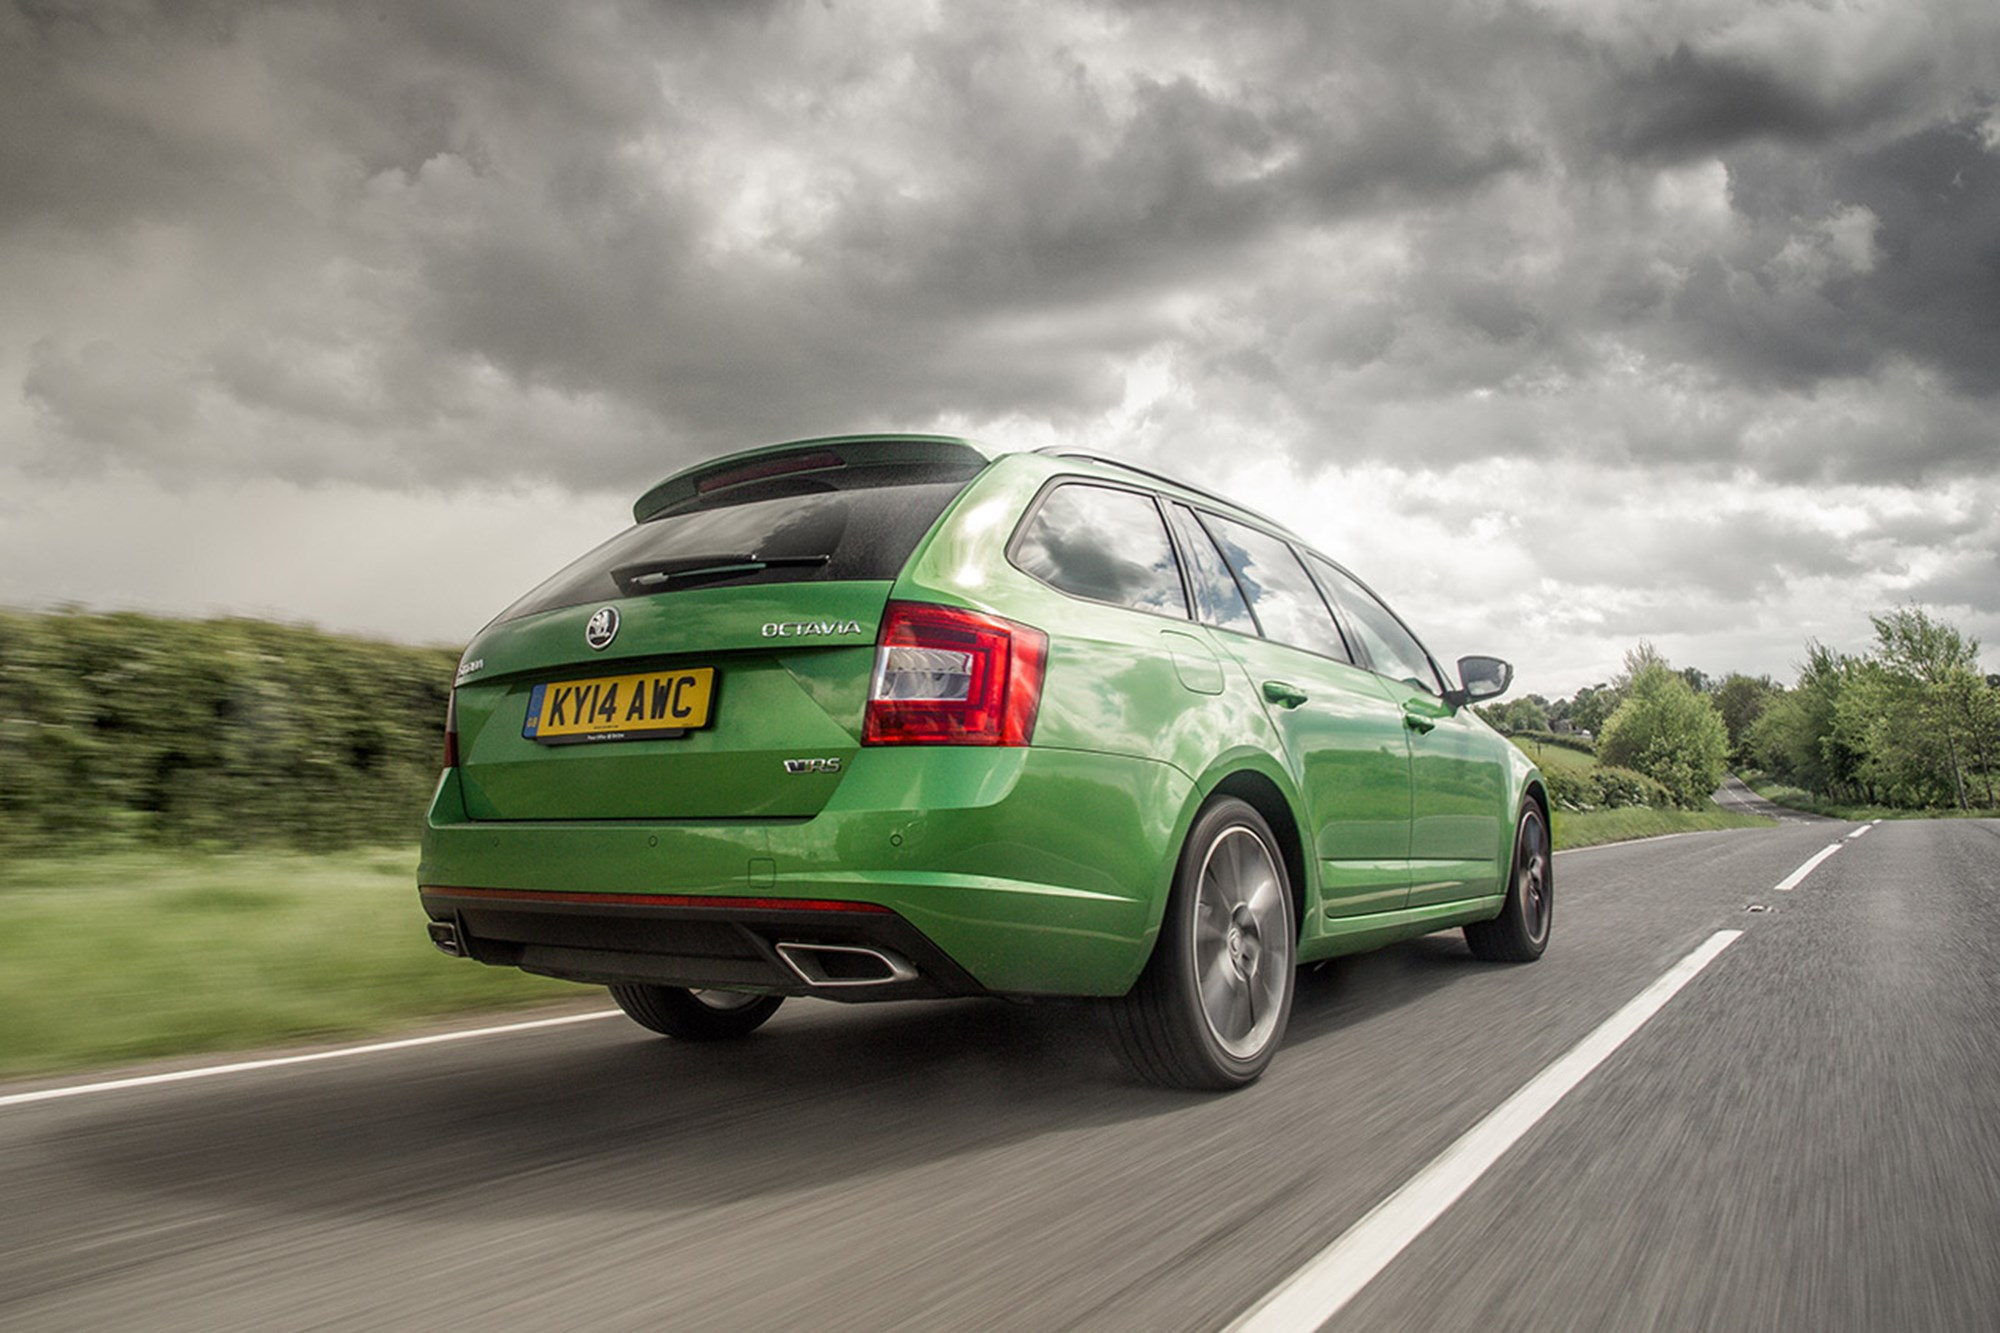 skoda octavia vrs estate diesel 2014 long term test review car magazine. Black Bedroom Furniture Sets. Home Design Ideas